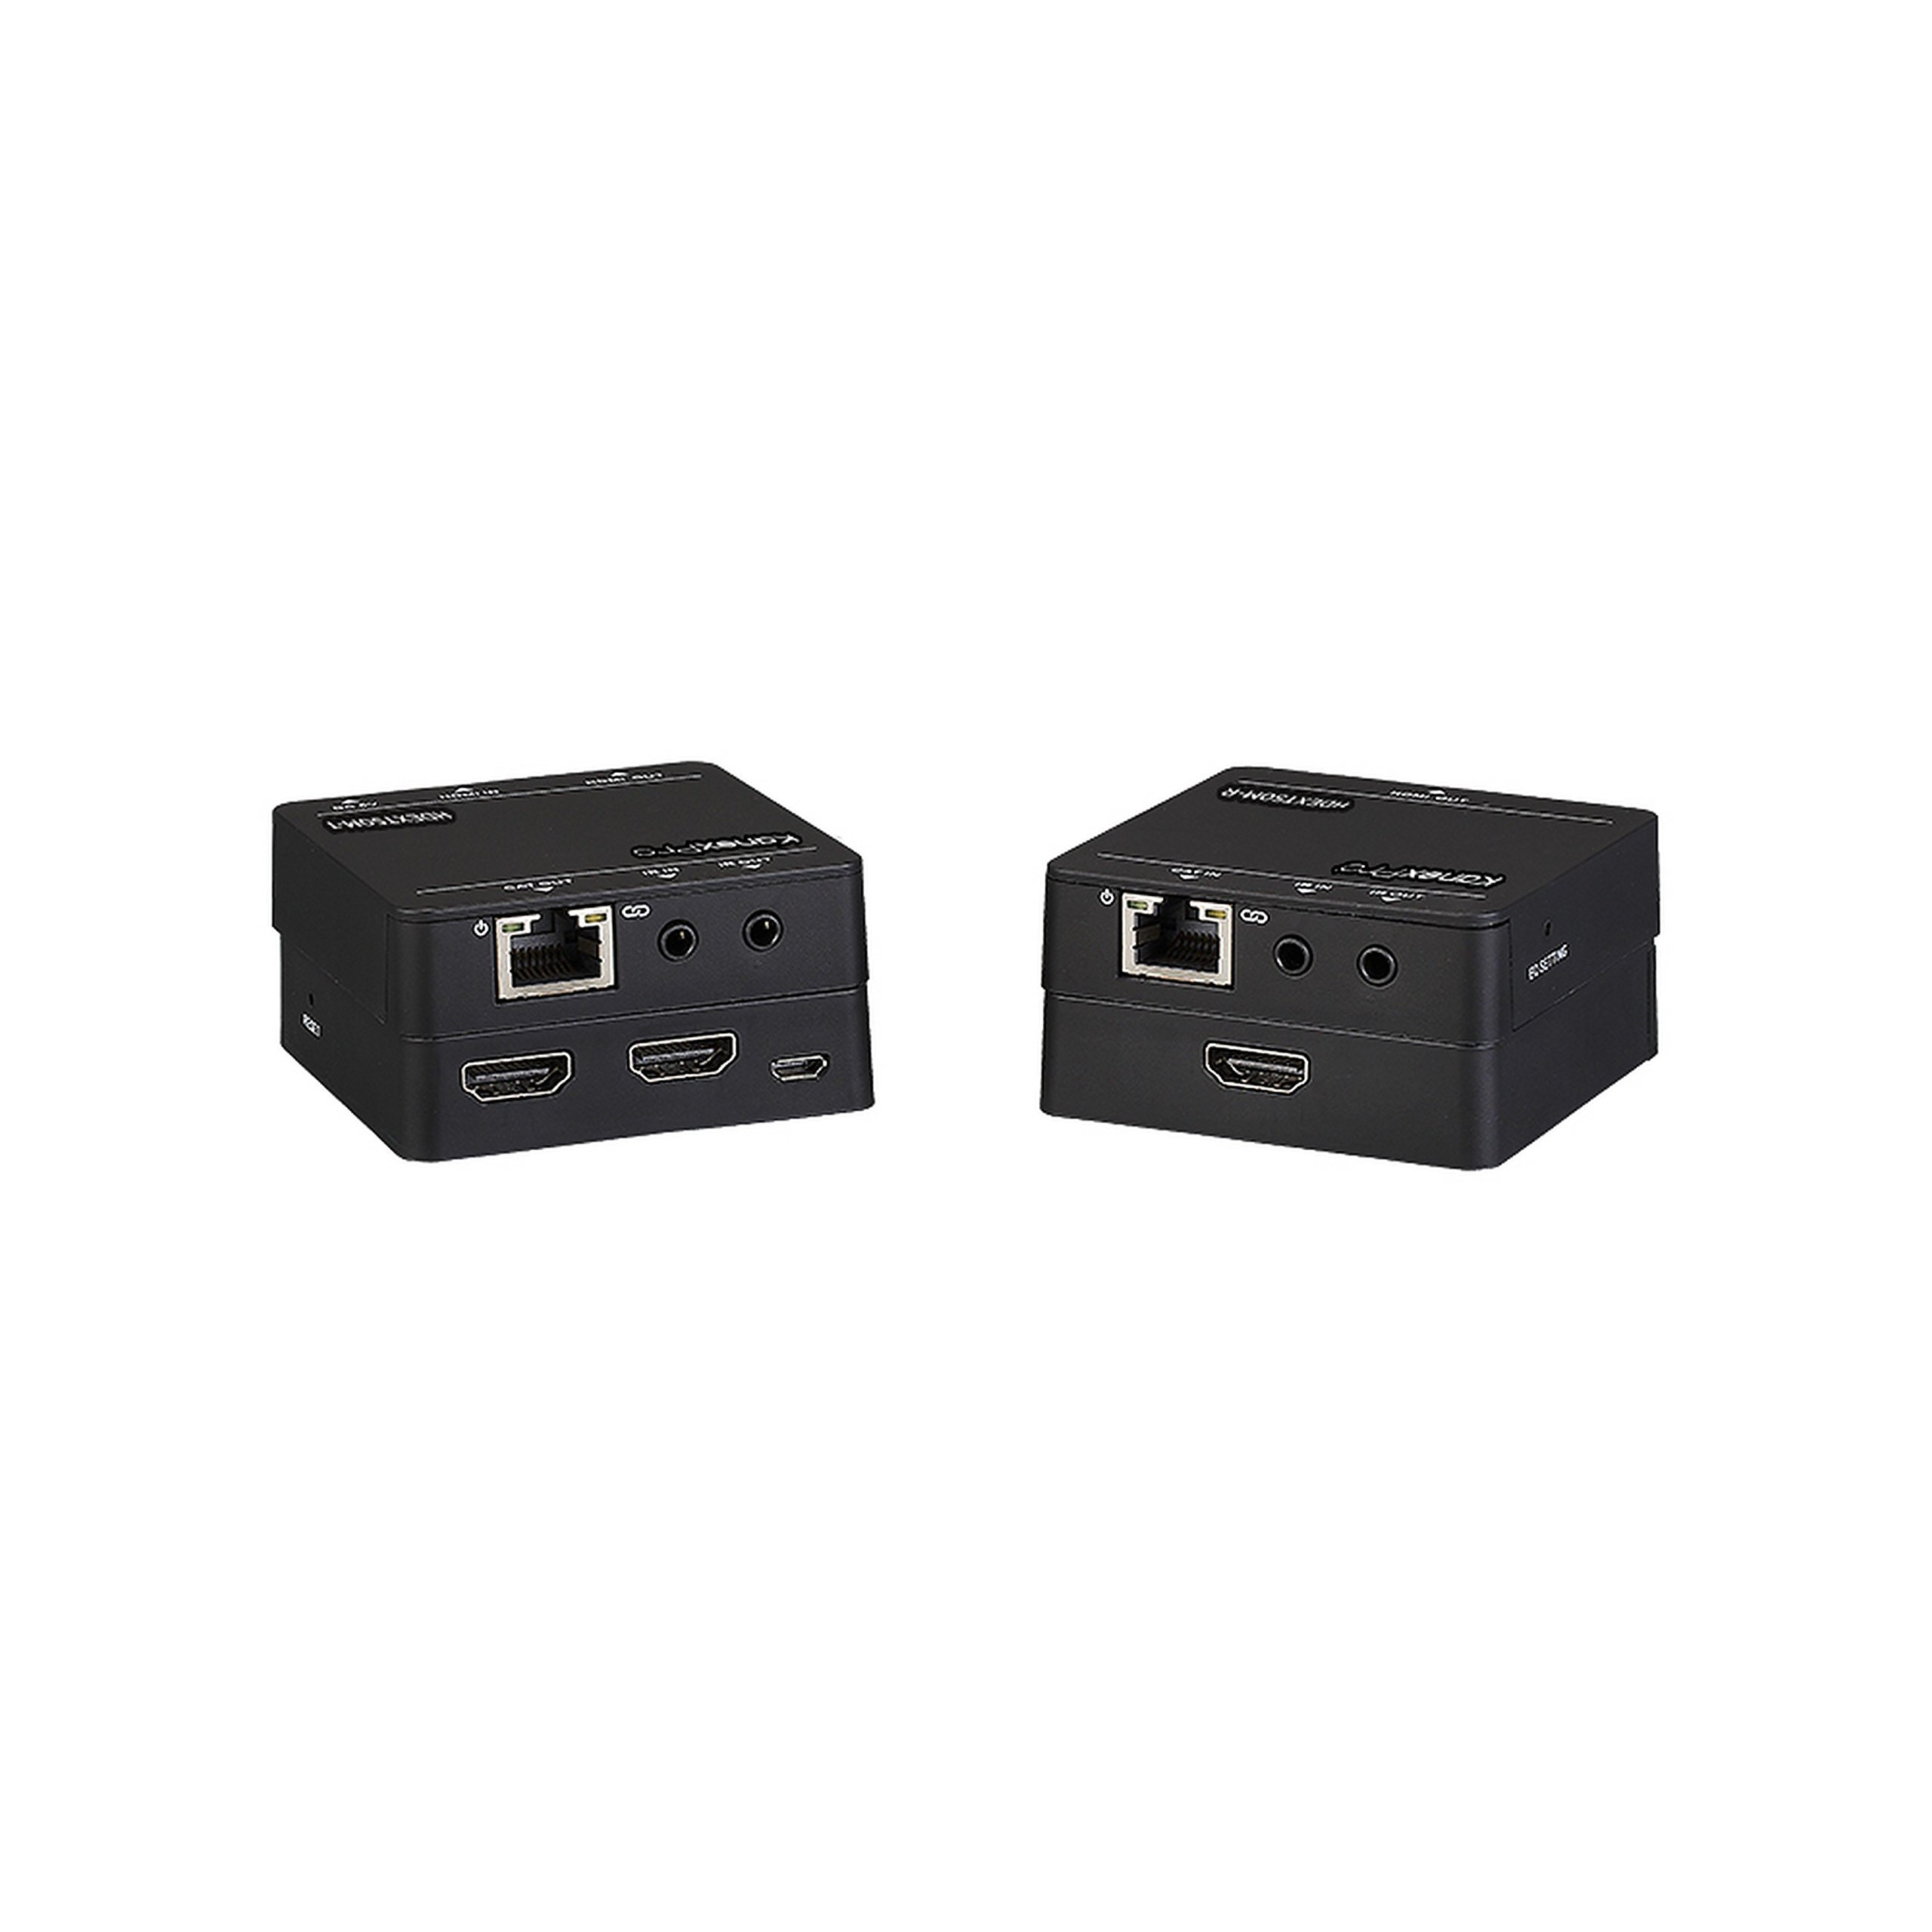 KanexPro HDMI Over CAT-5/6 Extender, Black (HDEXT50M) by Kanex Pro